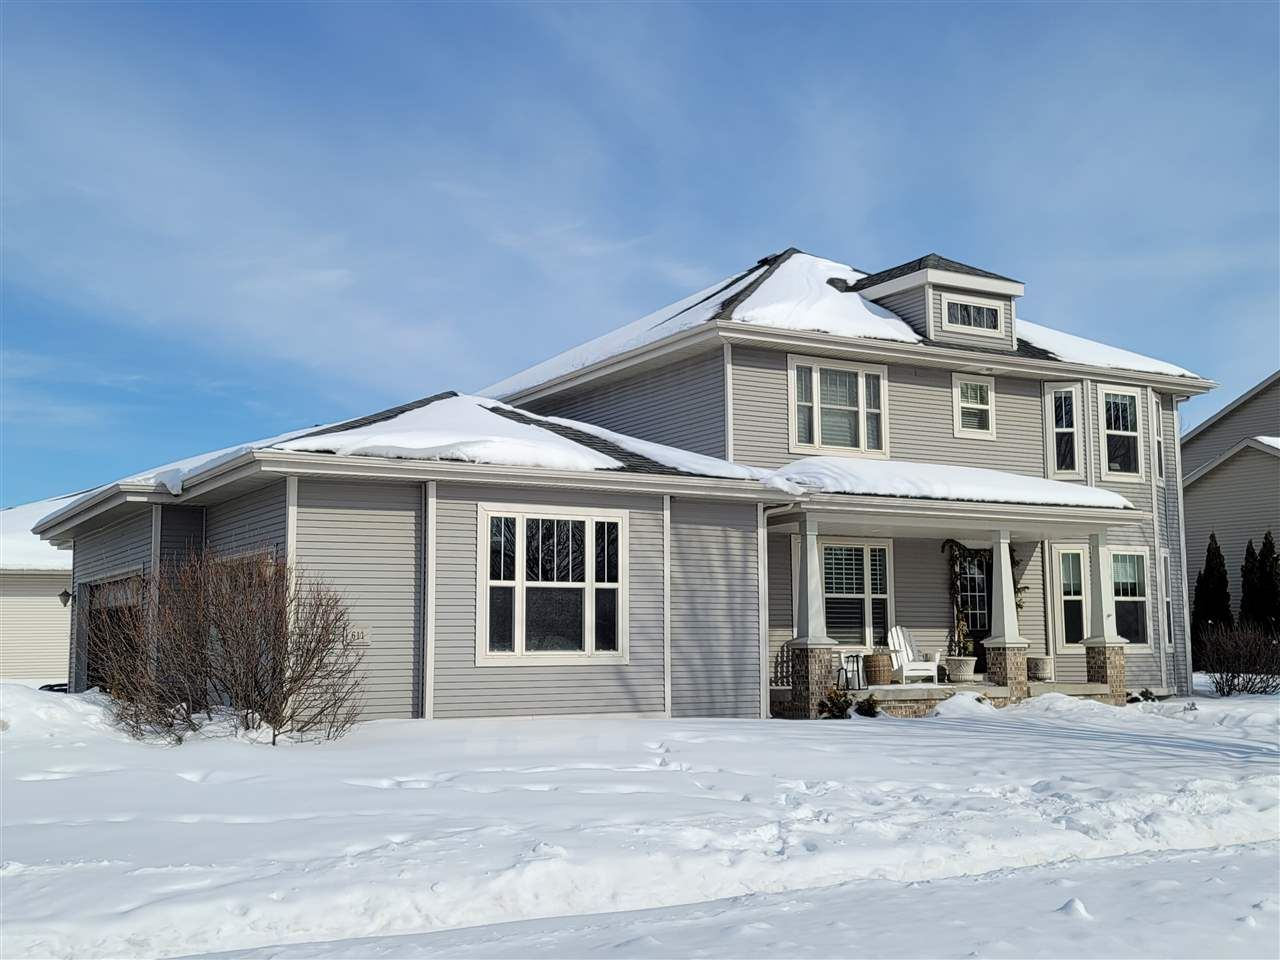 611 Pleasant Valley Pky, Waunakee, WI 53597 - #: 1902706